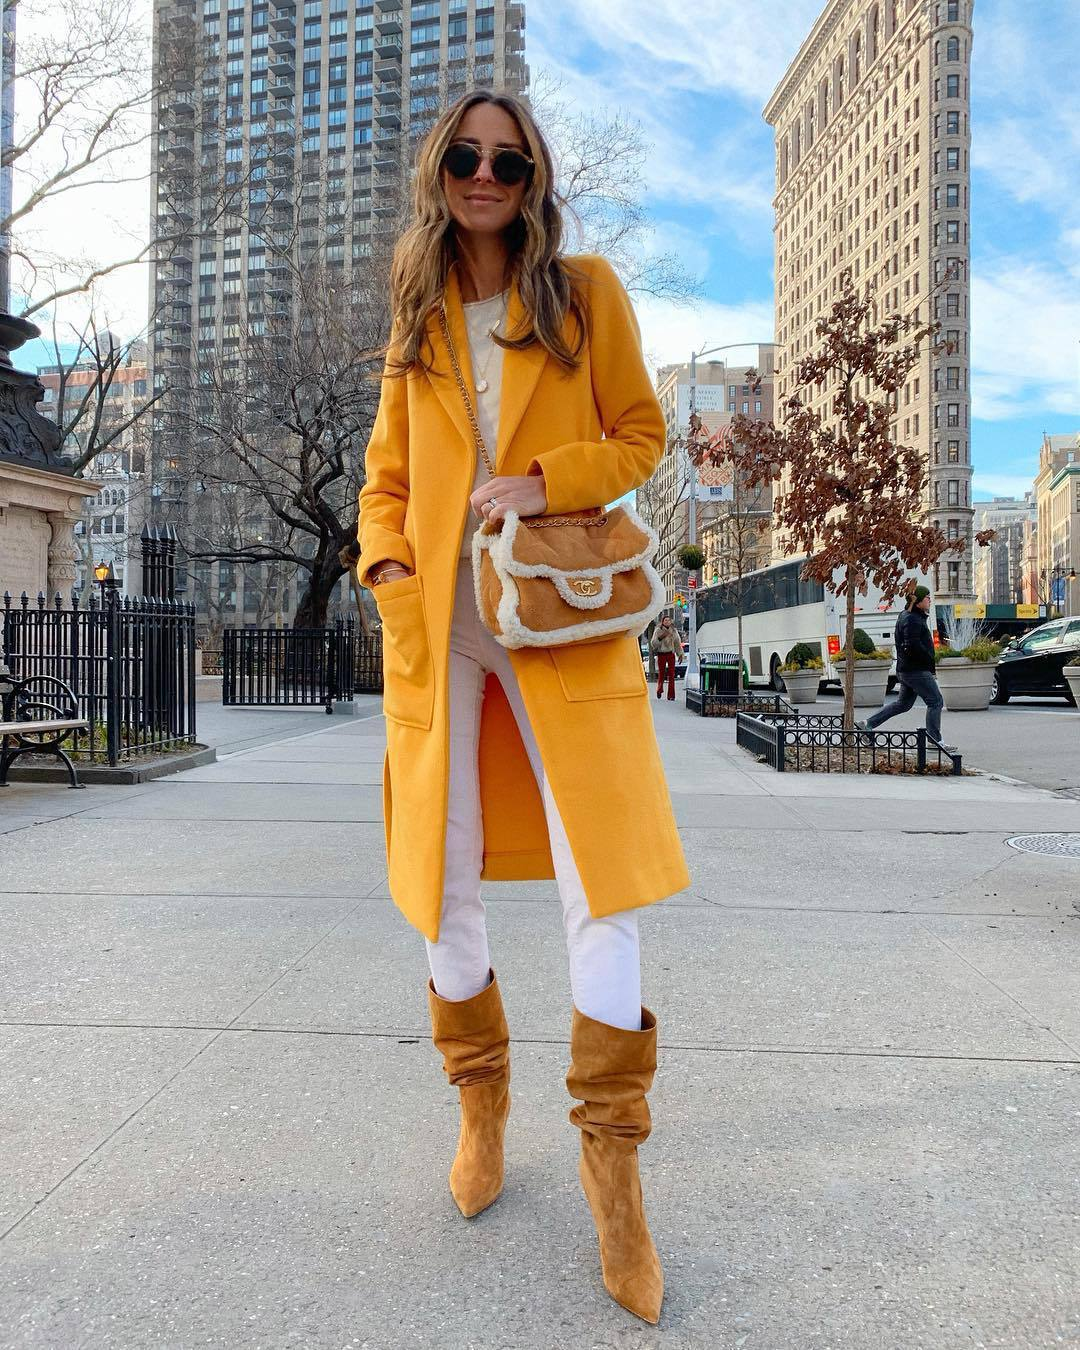 shoes knee high boots suede boots yellow coat heel boots white jeans skinny jeans crossbody bag brown bag white top